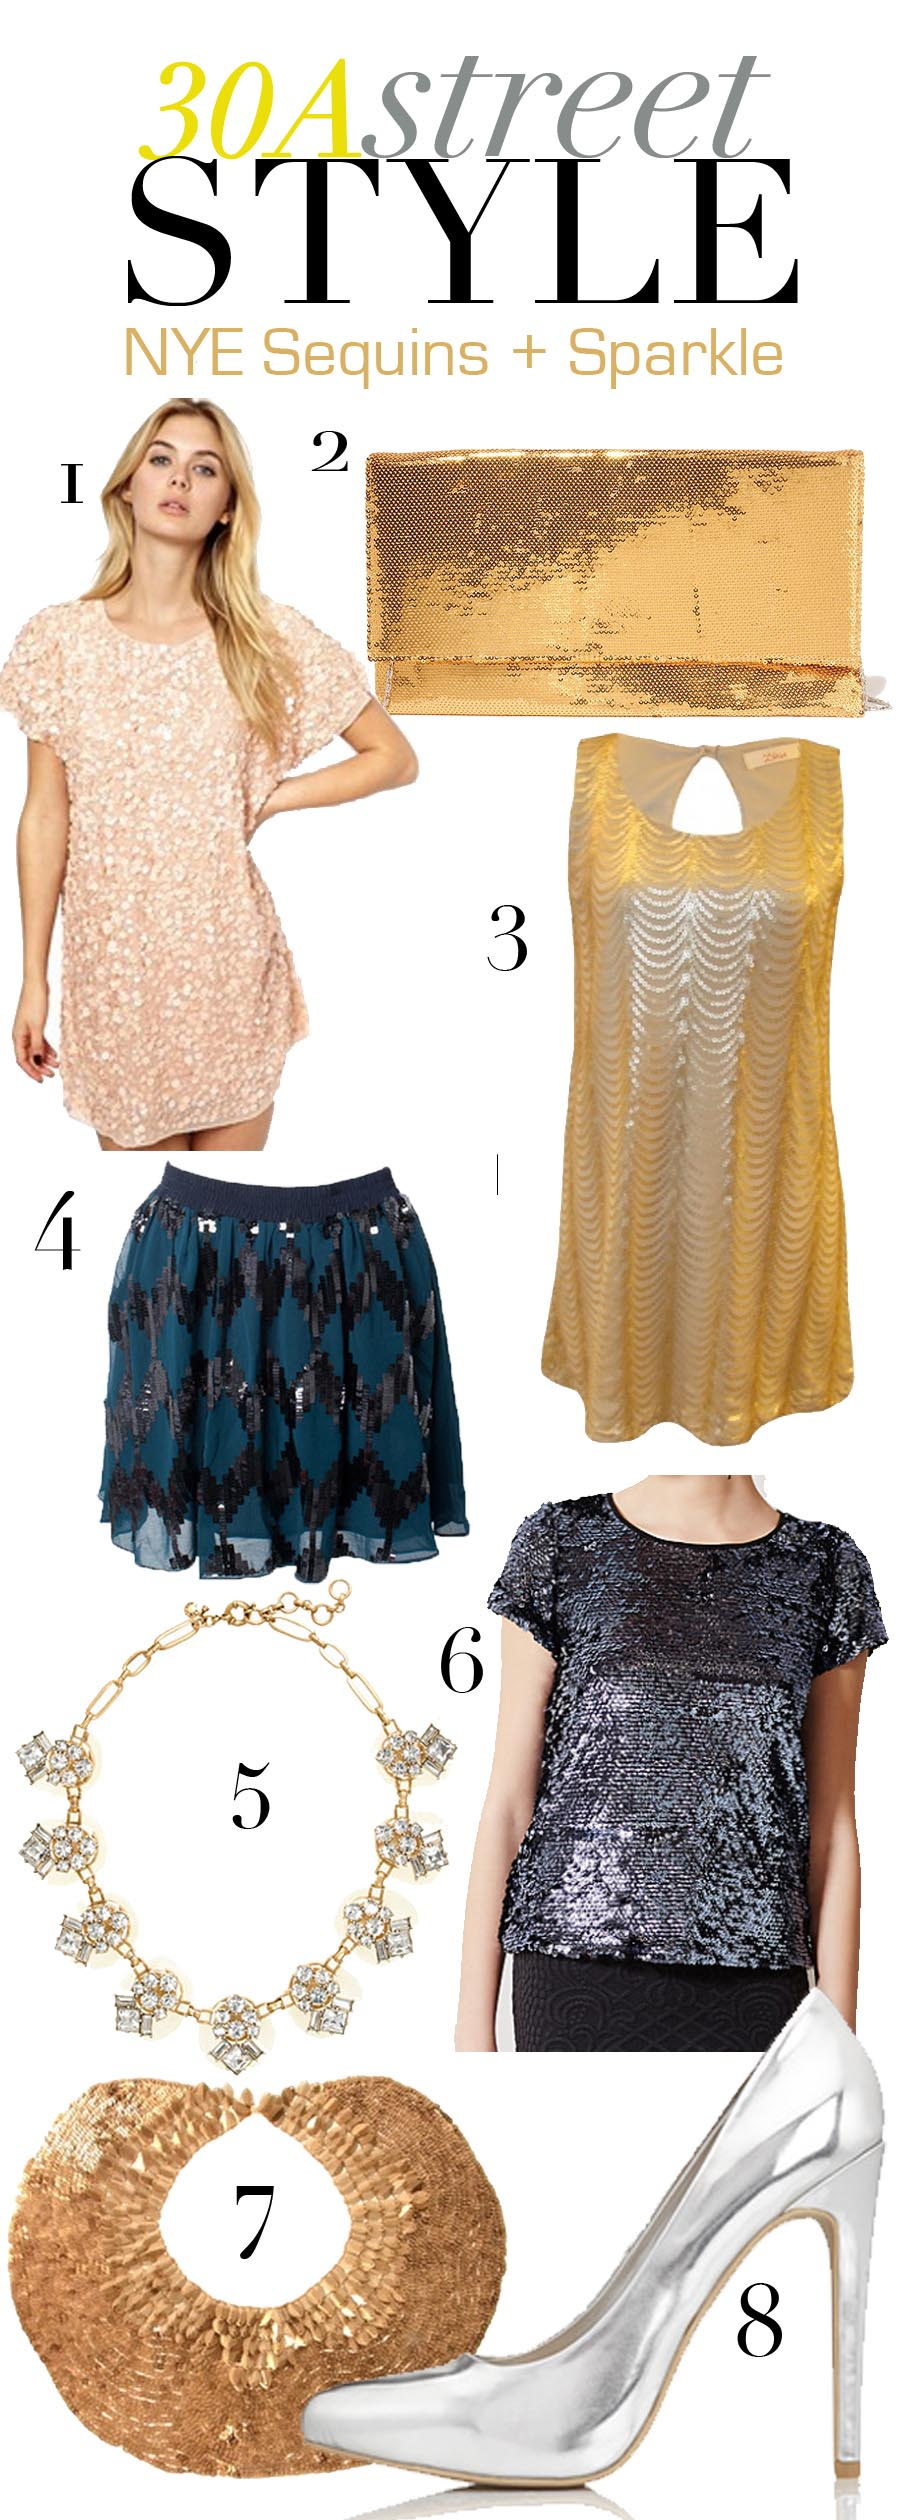 New Year's Eve Style Guide - Sequins Sparkle  |  30A Street Style